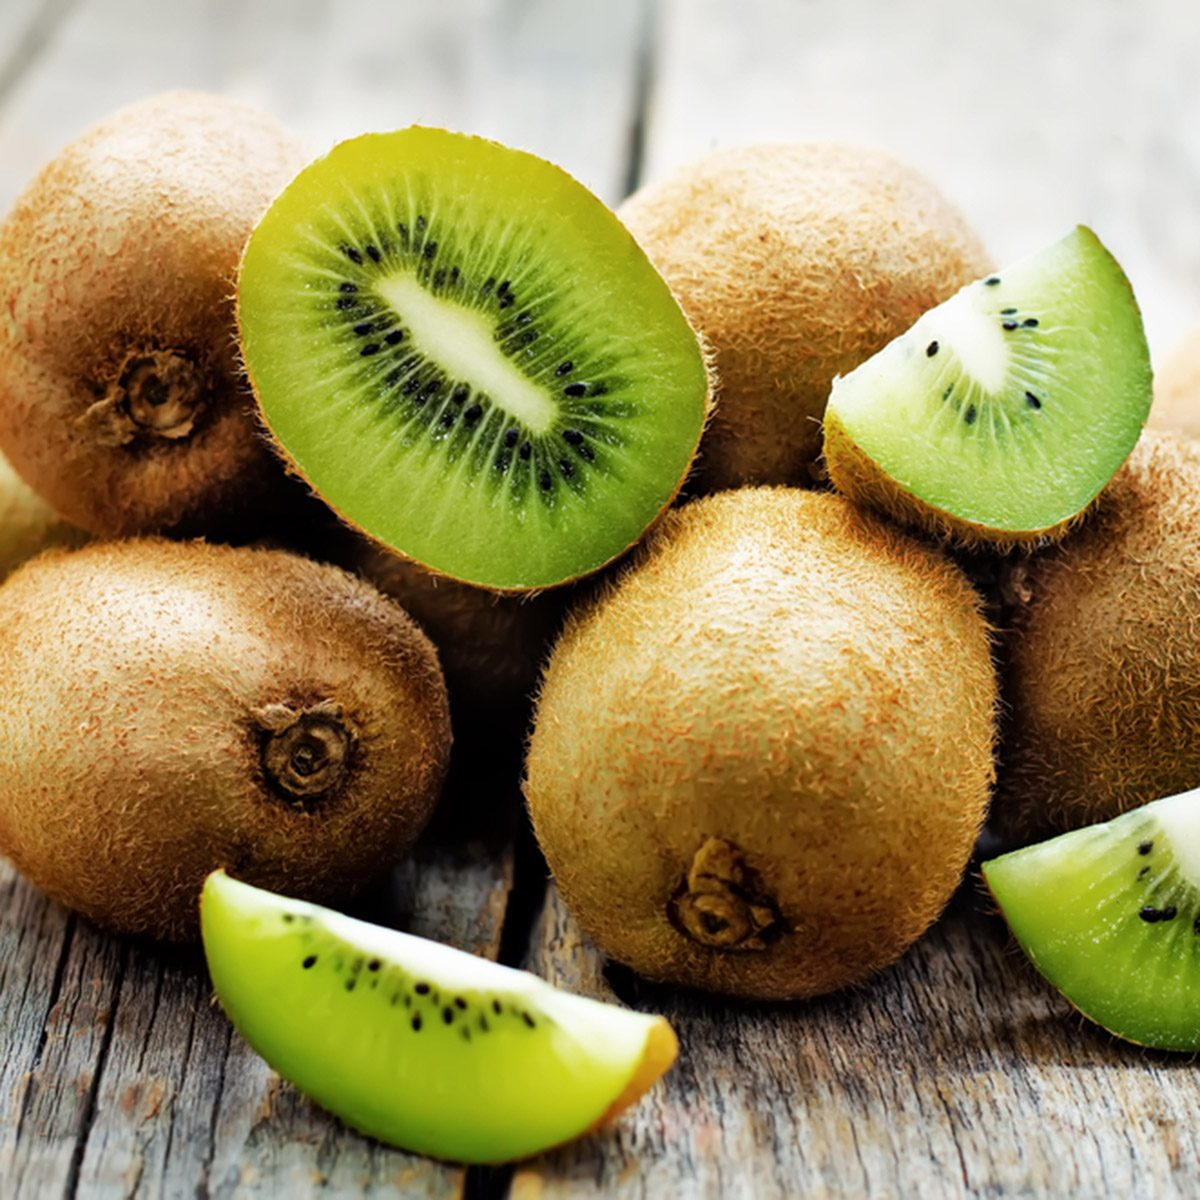 kiwi on white wood background.